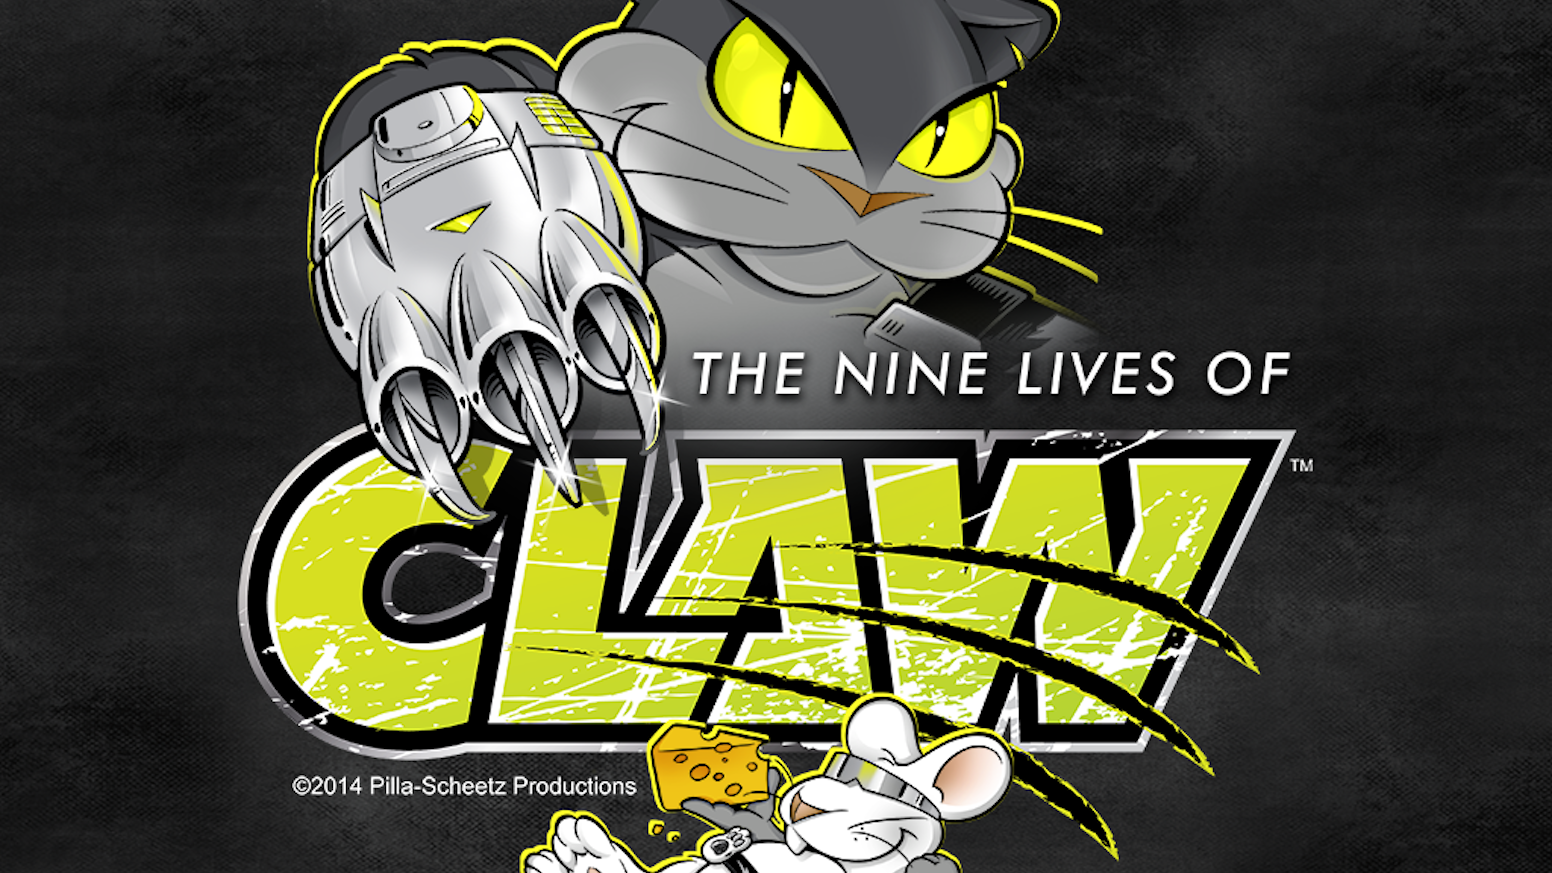 The Nine Lives of Claw: animated adventures of Claw (cat) & Edison (mouse) action, humor, music & gadgets; indie flavor & cartoon magic